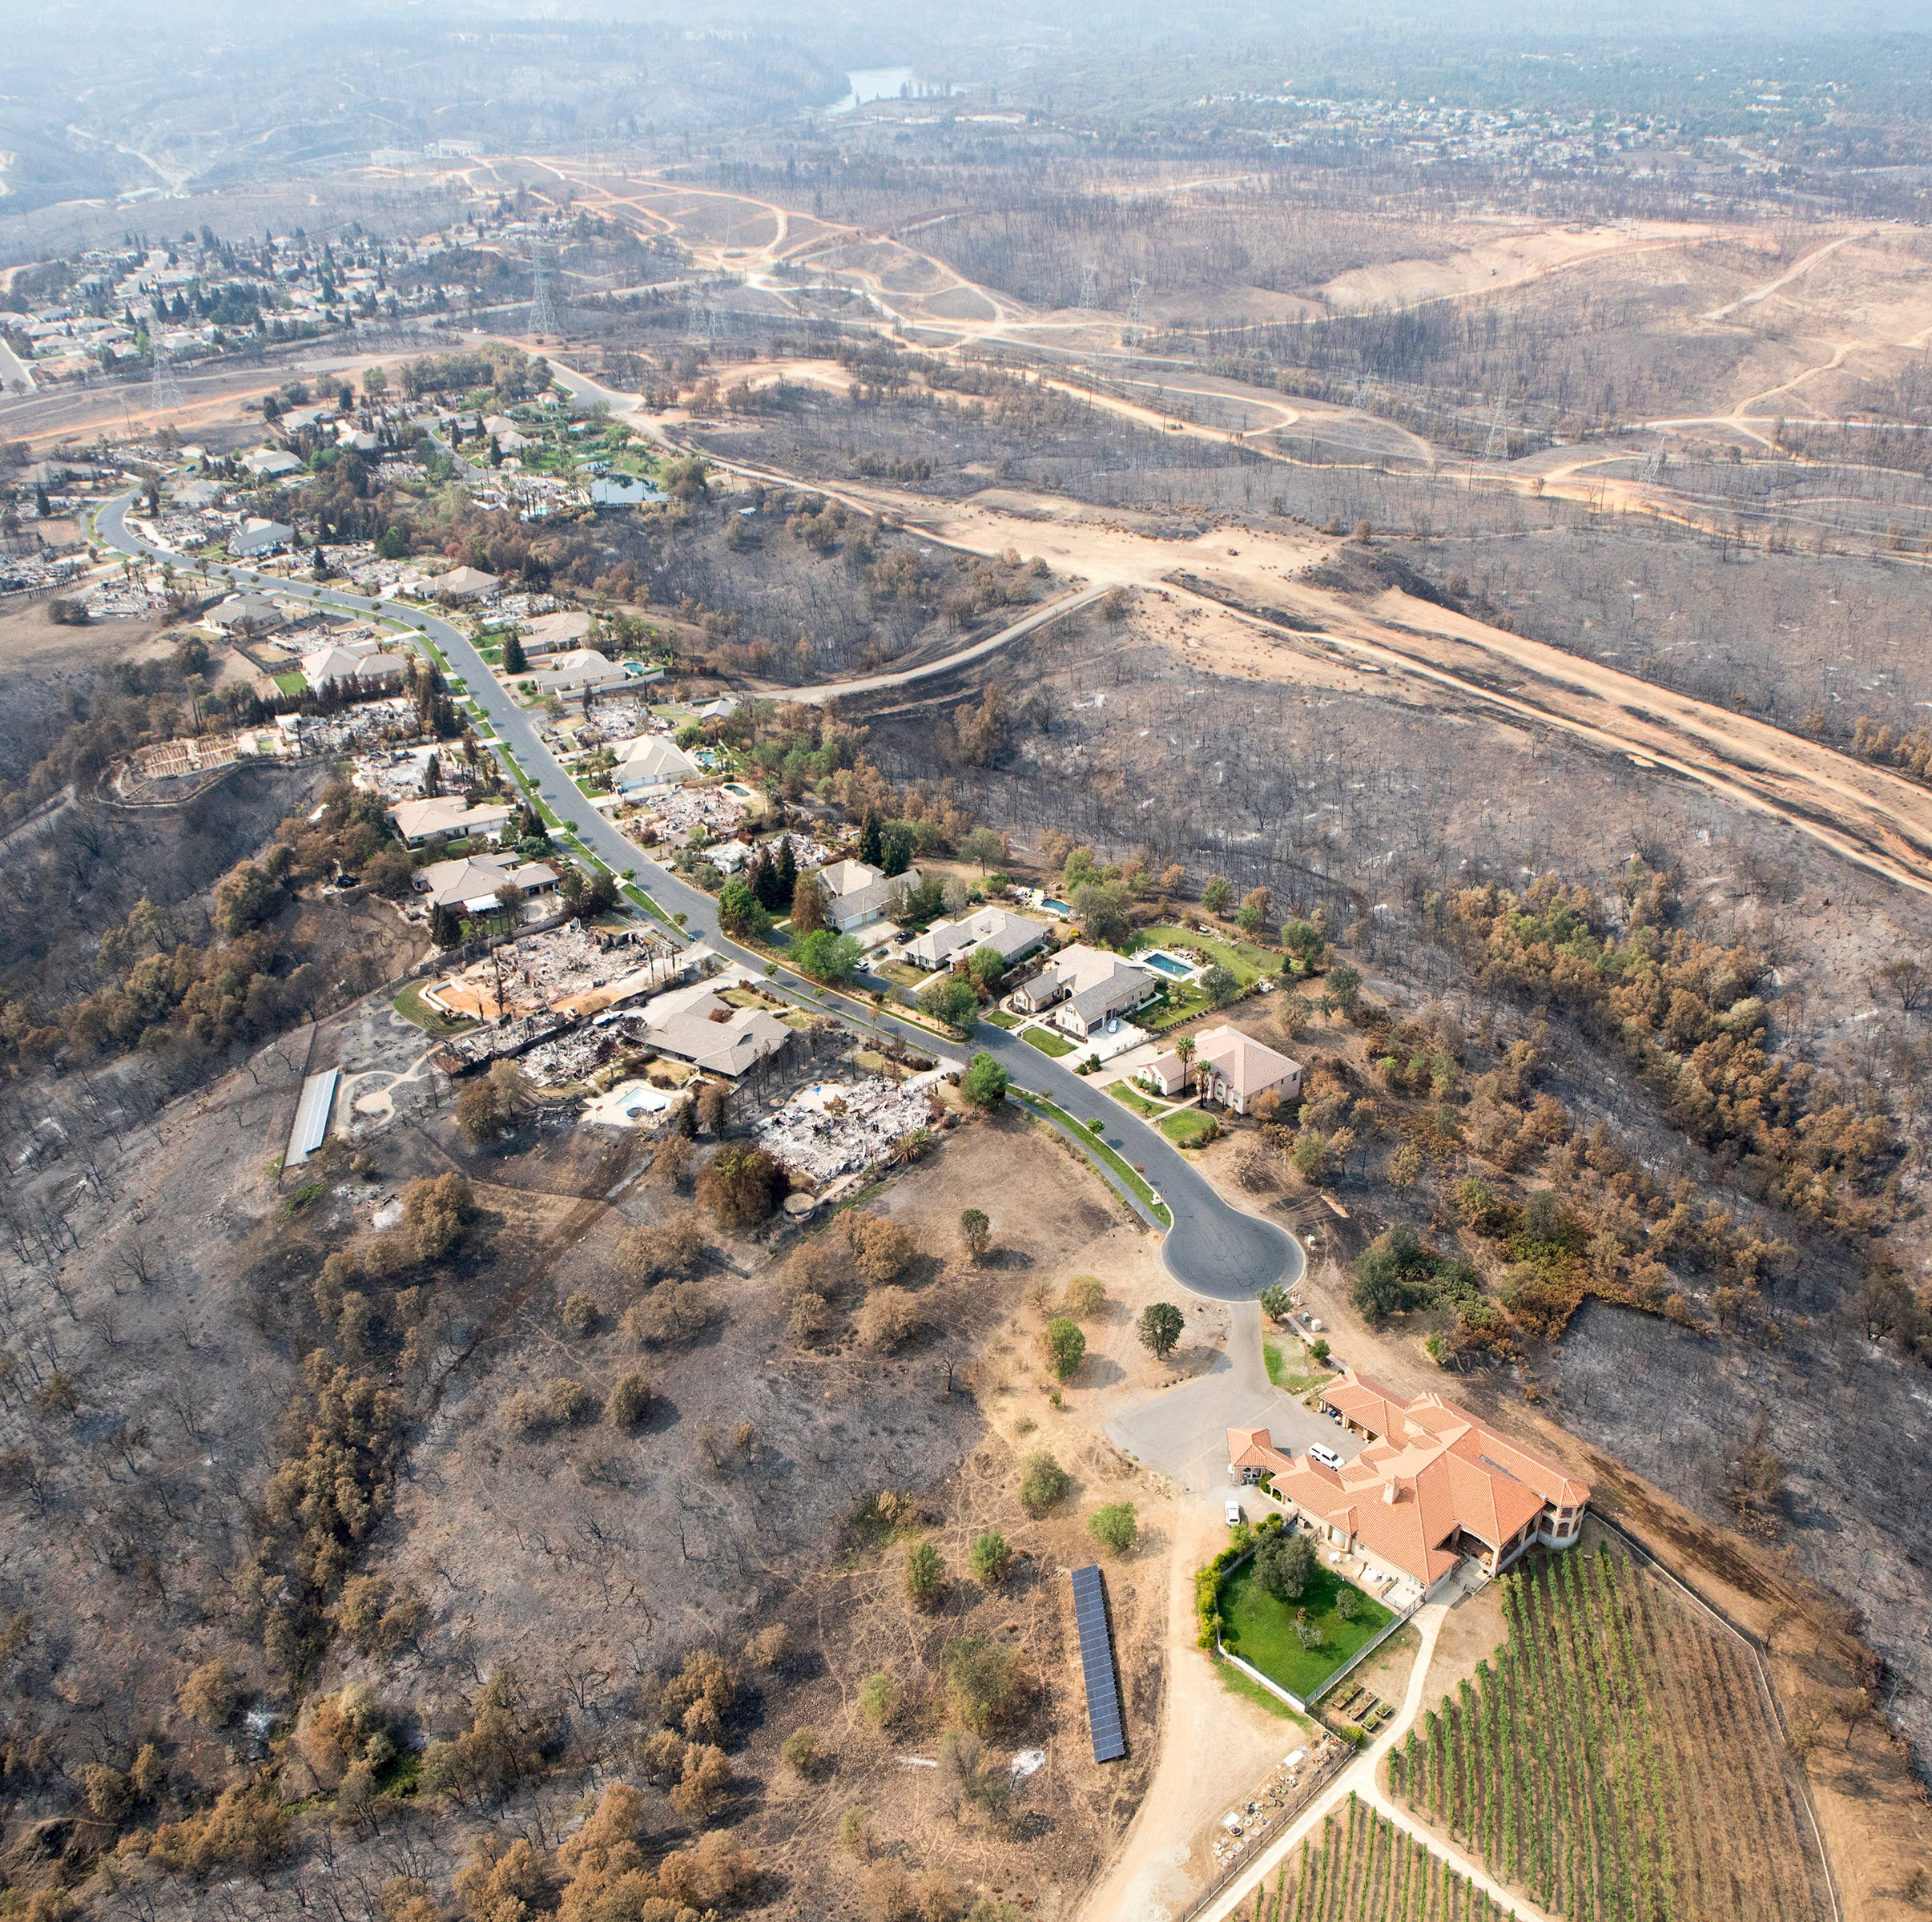 Homeowners who lost everything in the Carr Fire are preparing class action lawsuits